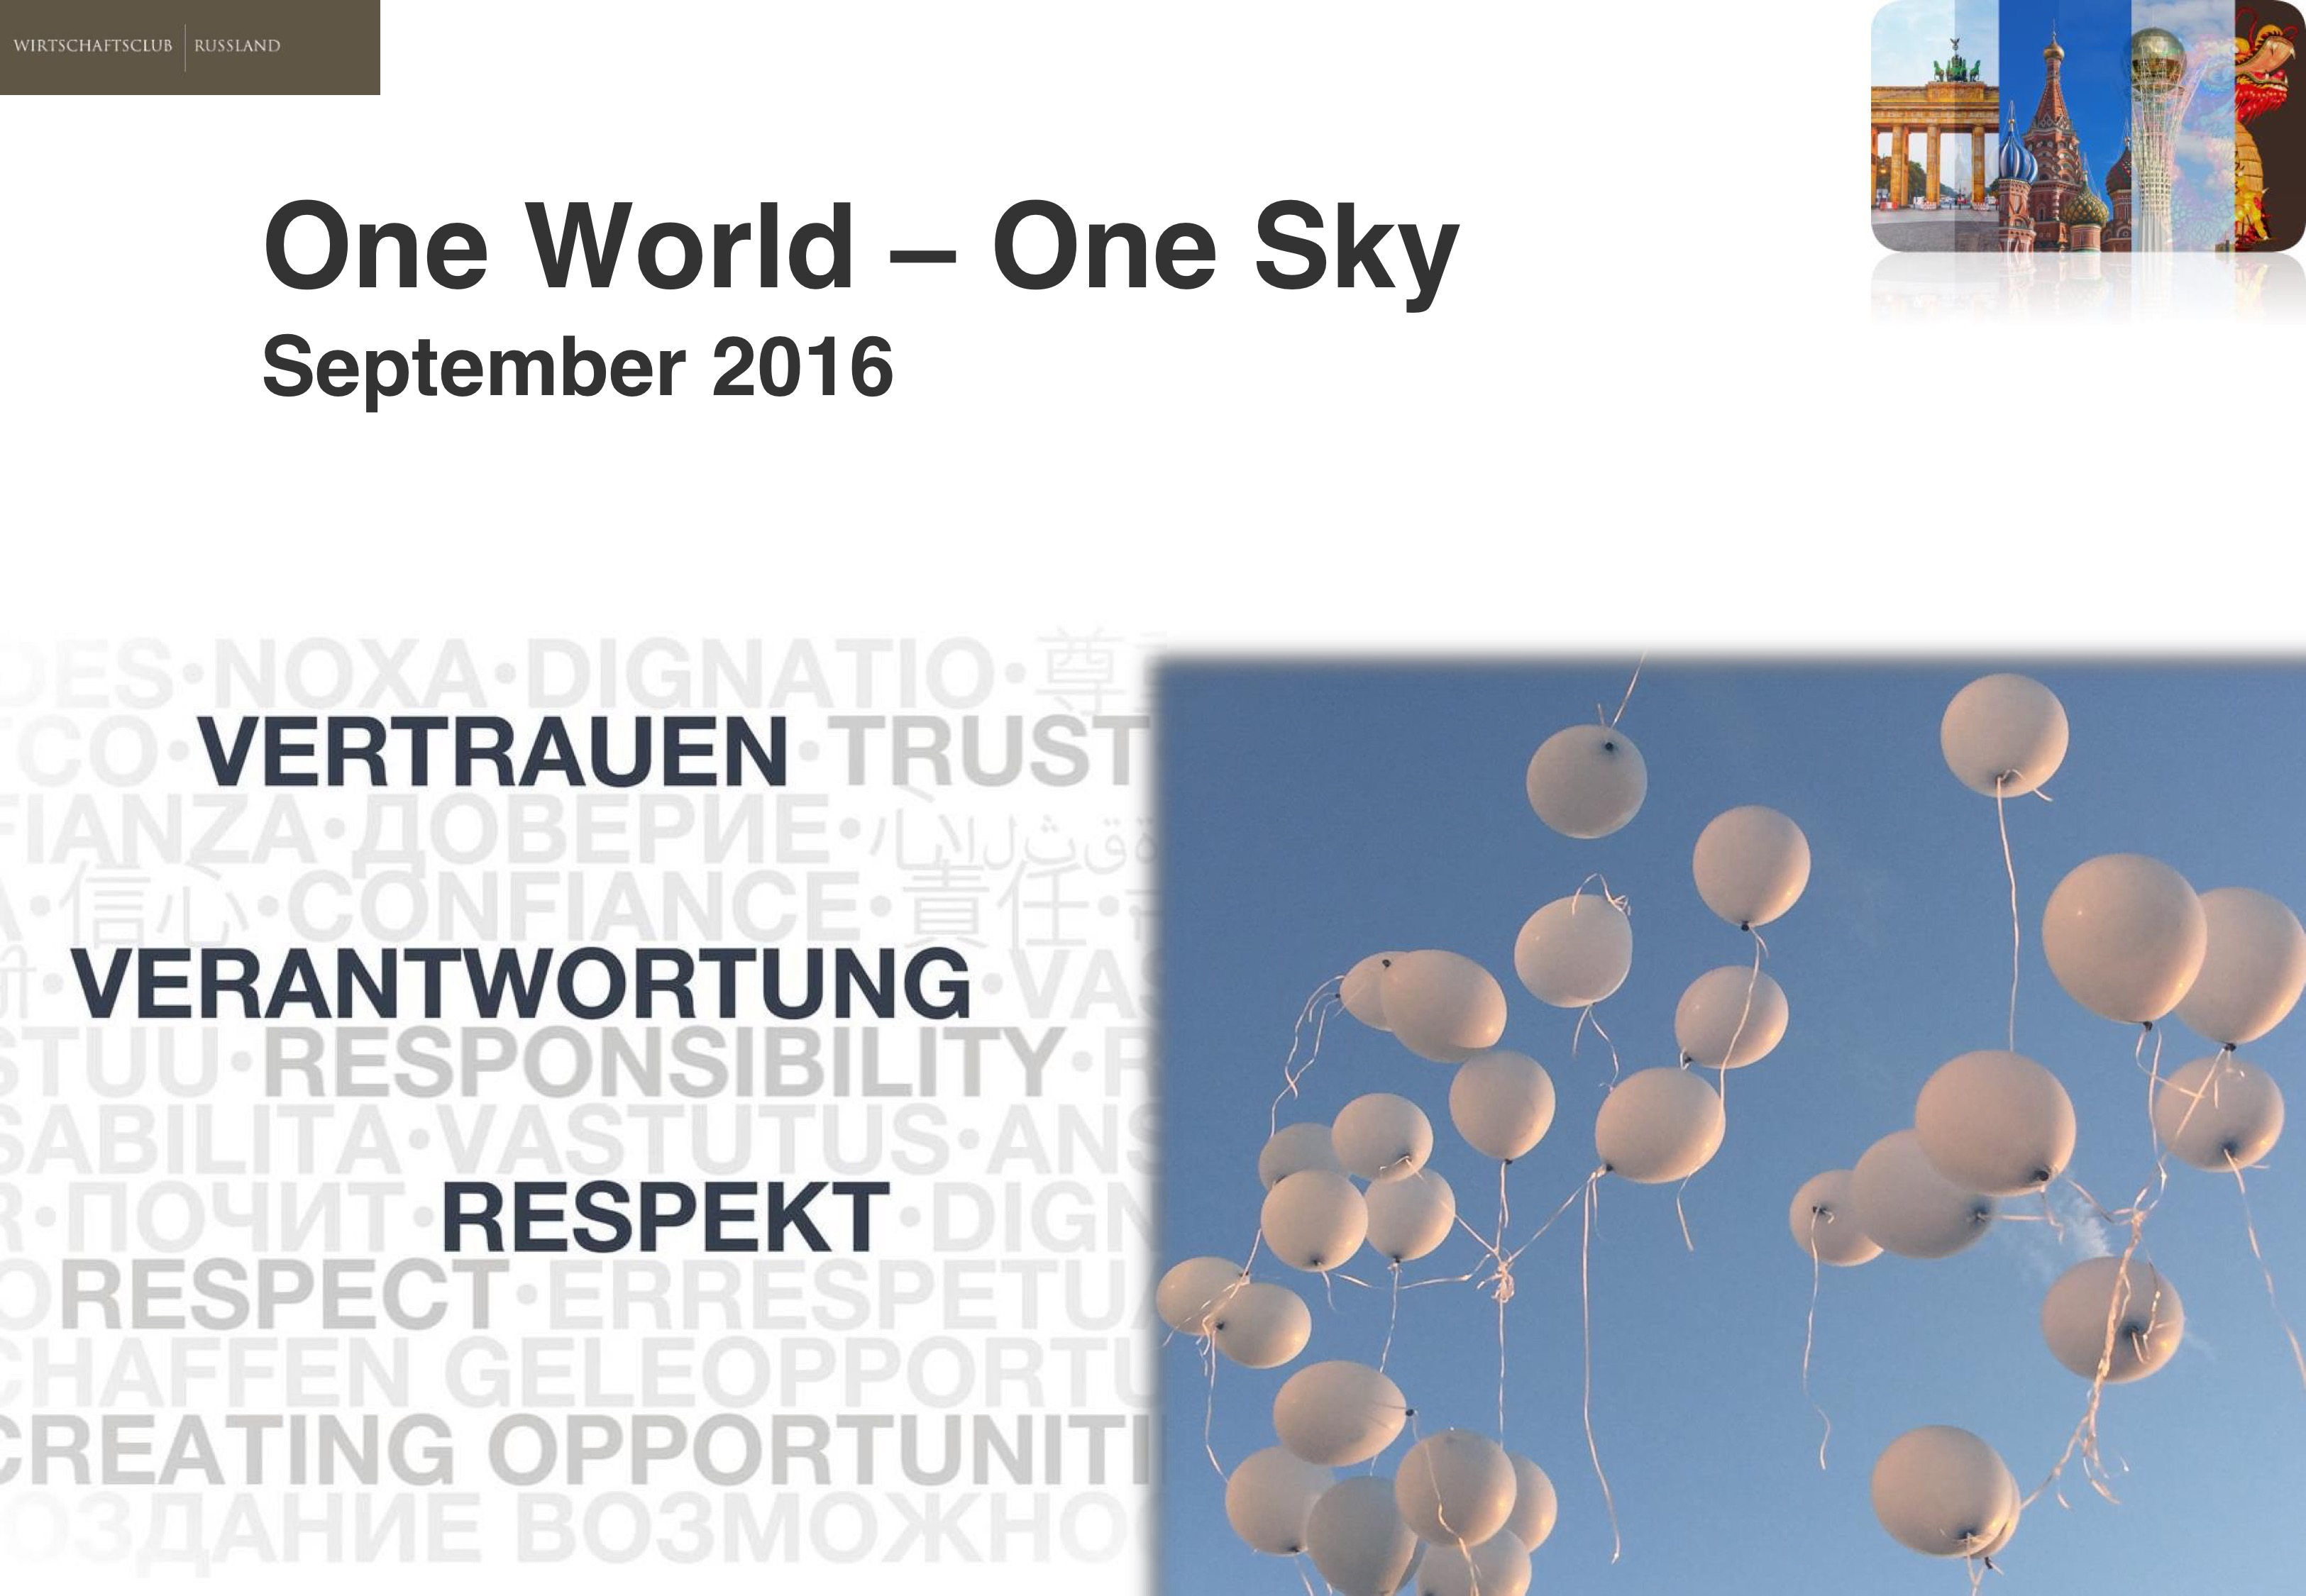 One World - One Sky